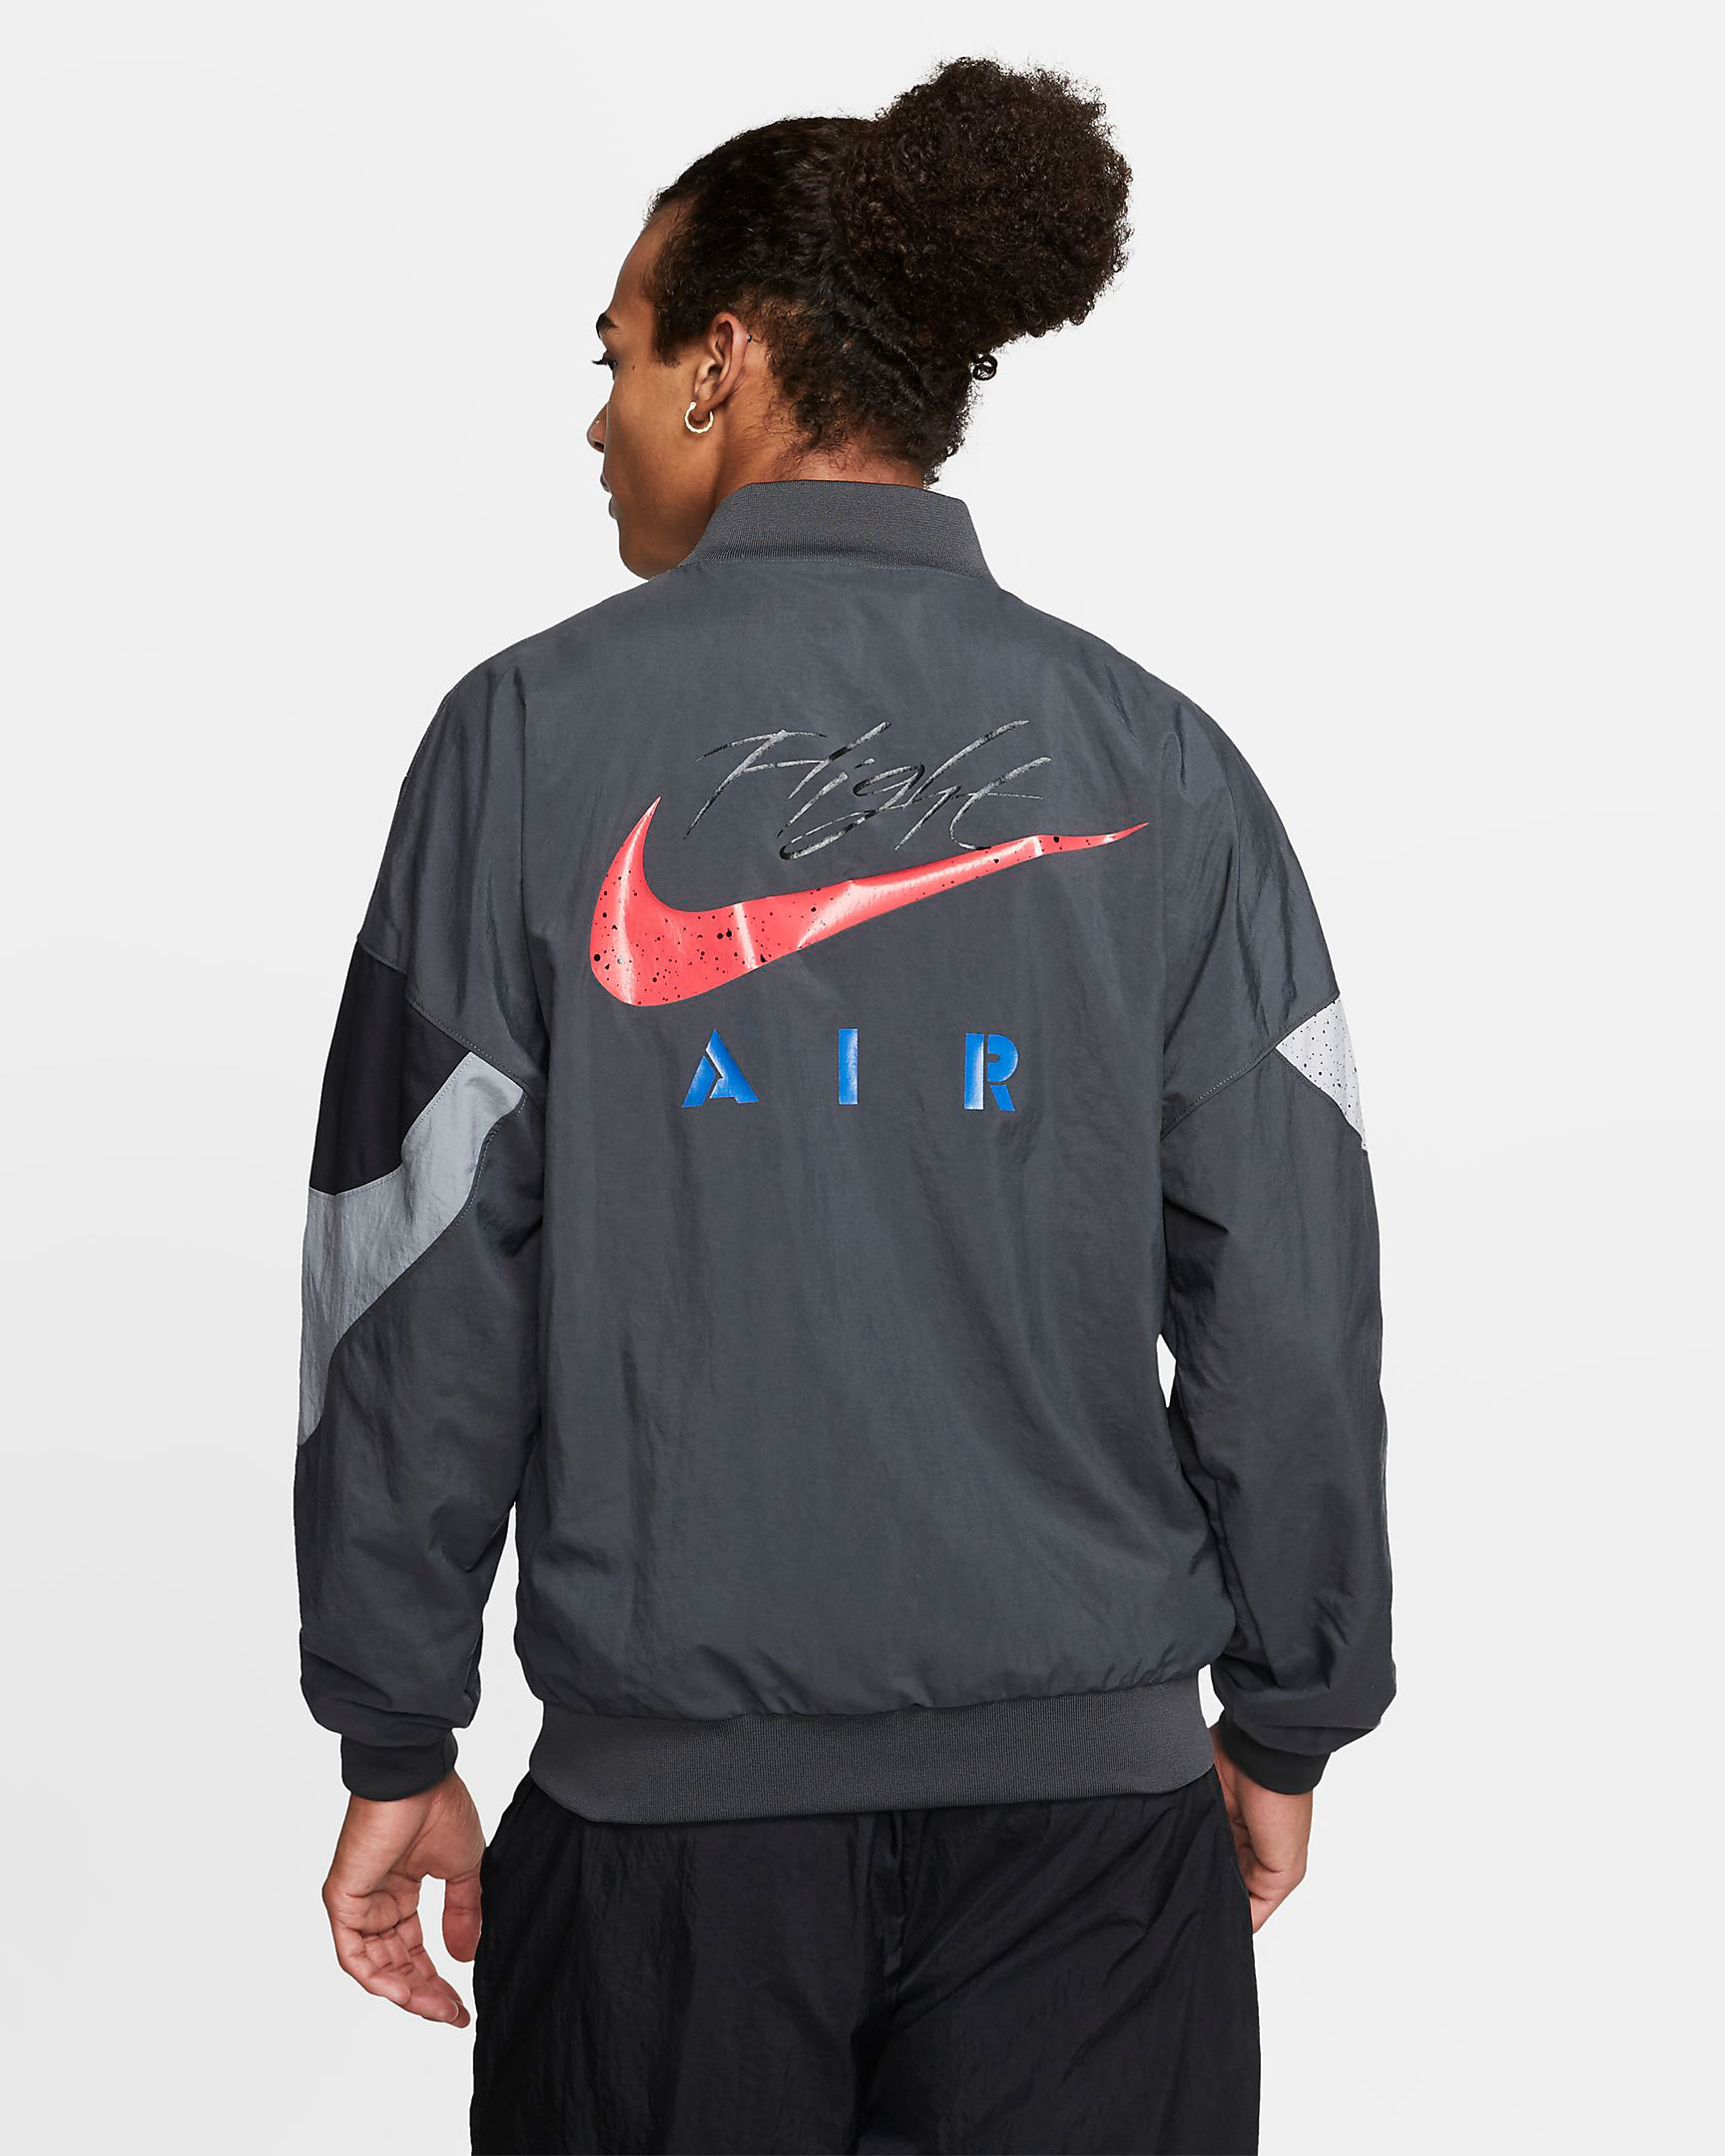 air-jordan-4-what-the-jacket-2